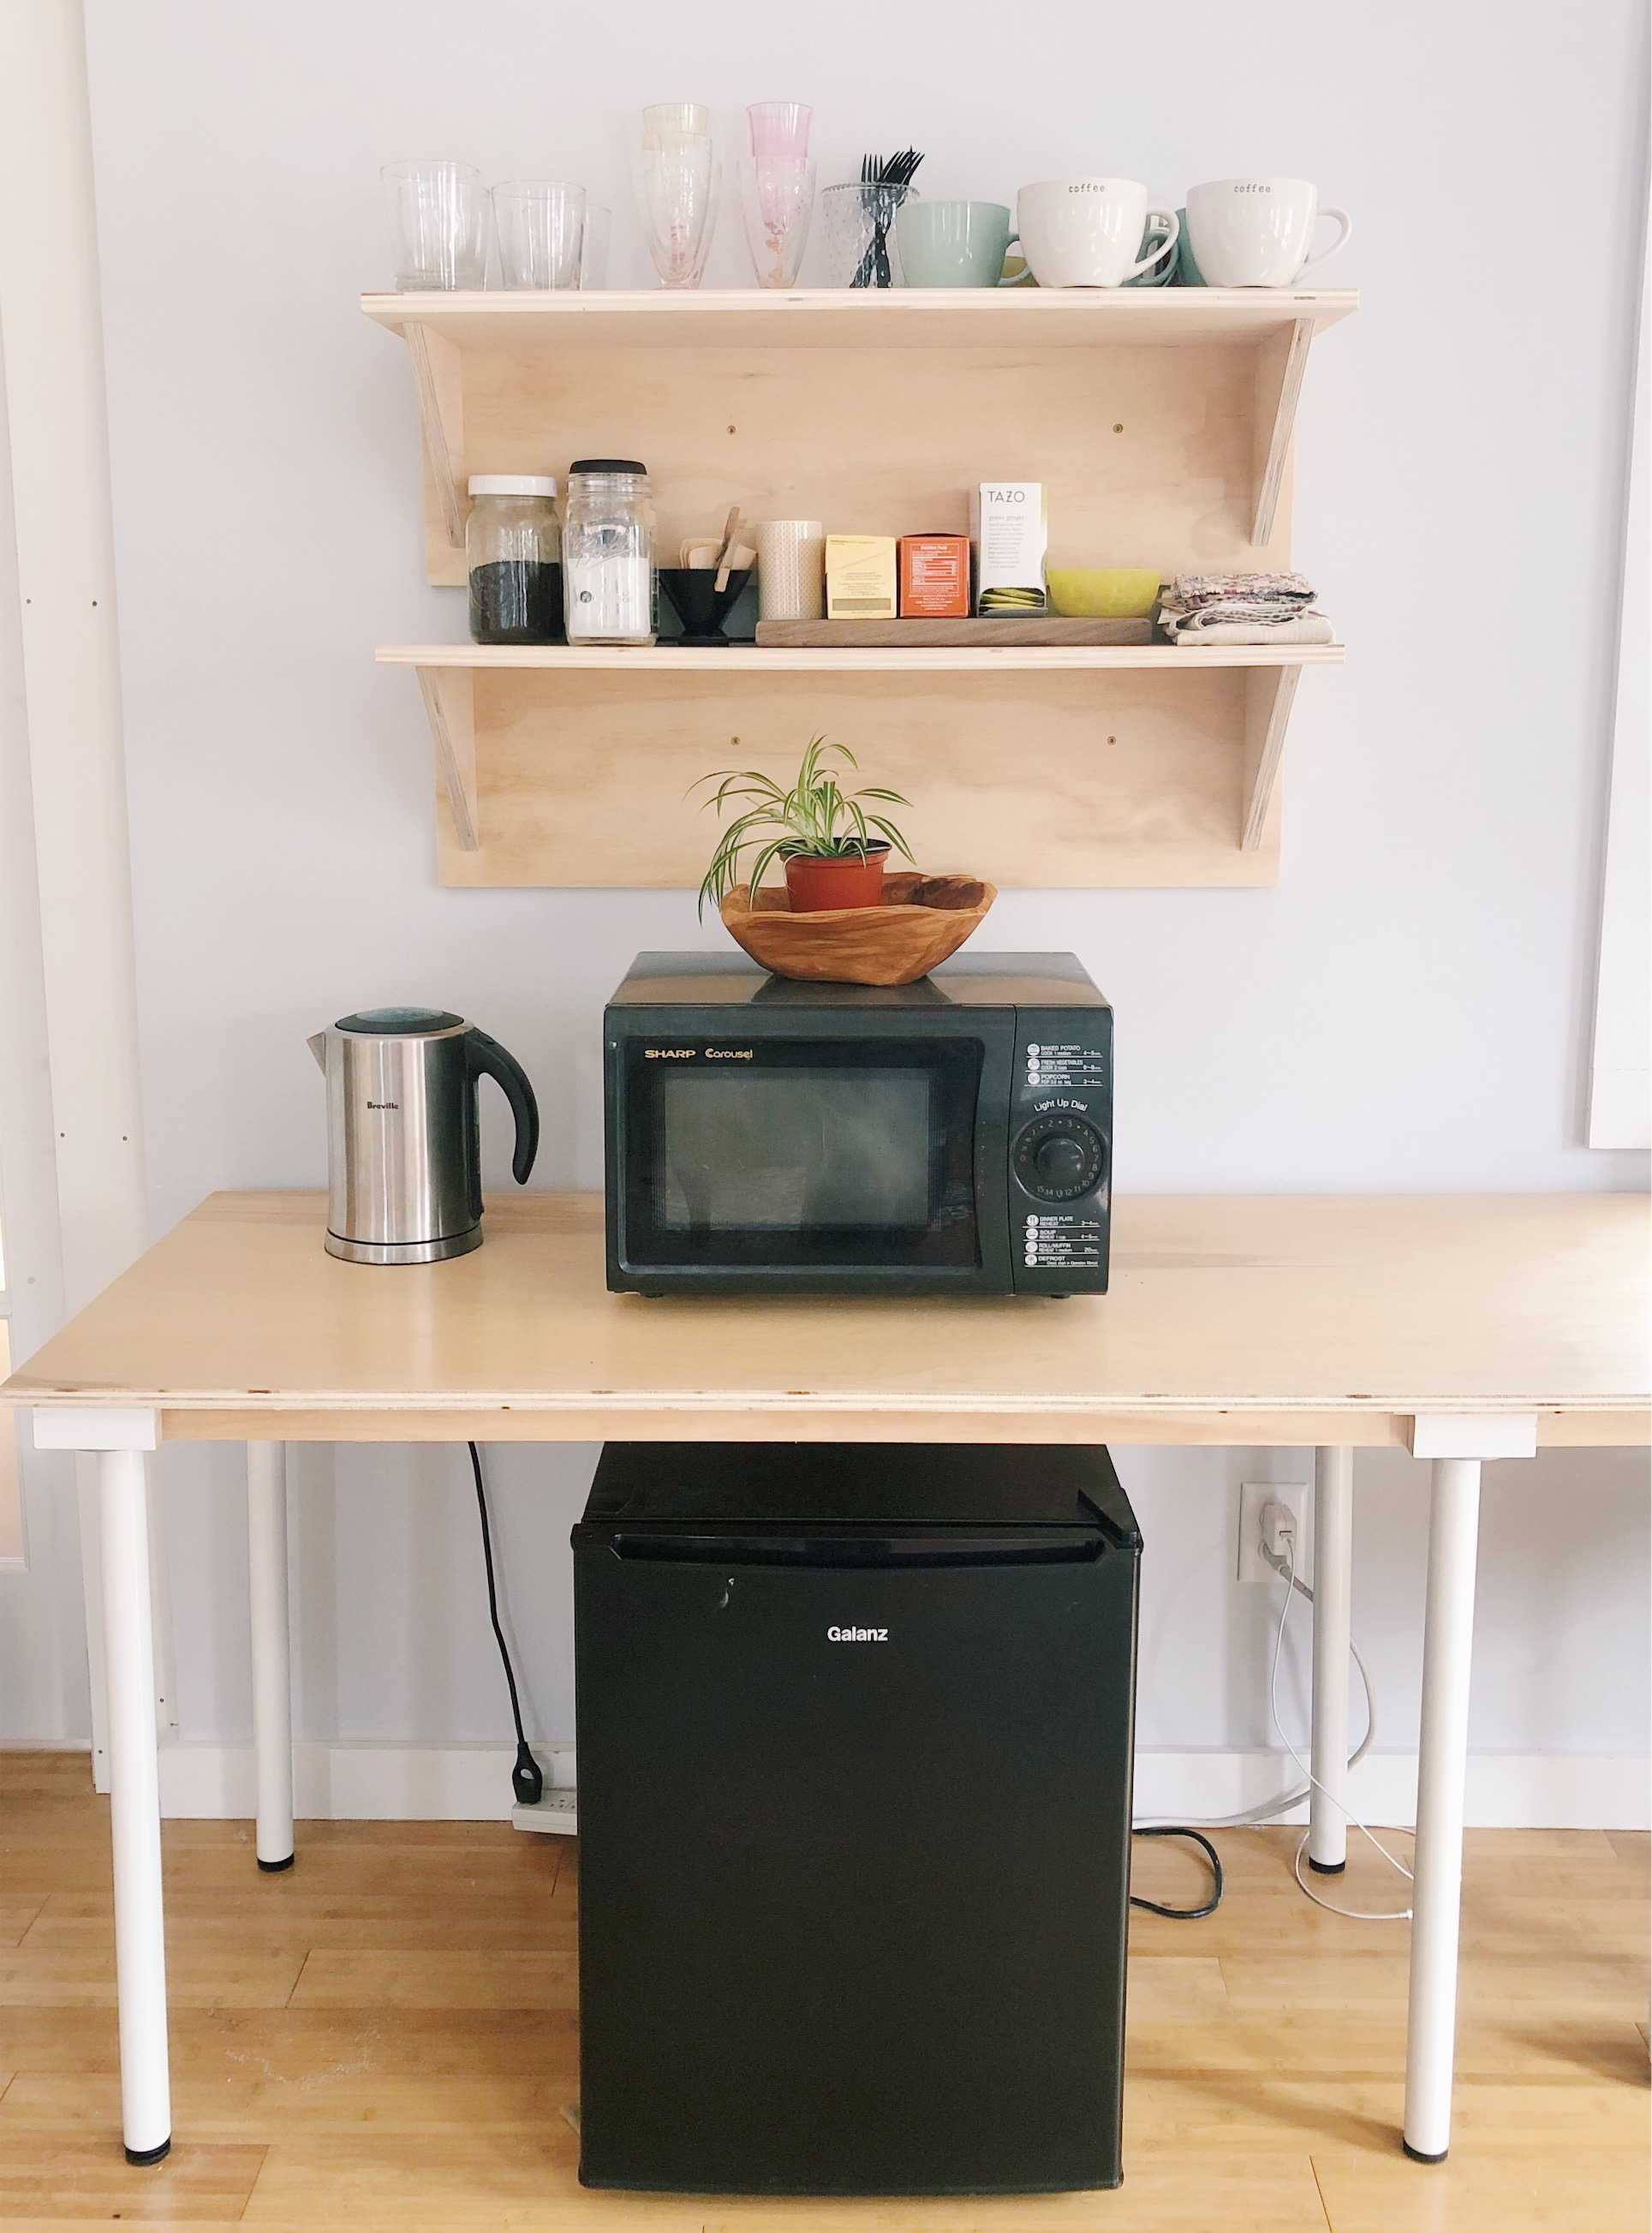 Kitchenette with electric kettle and mini-fridge.